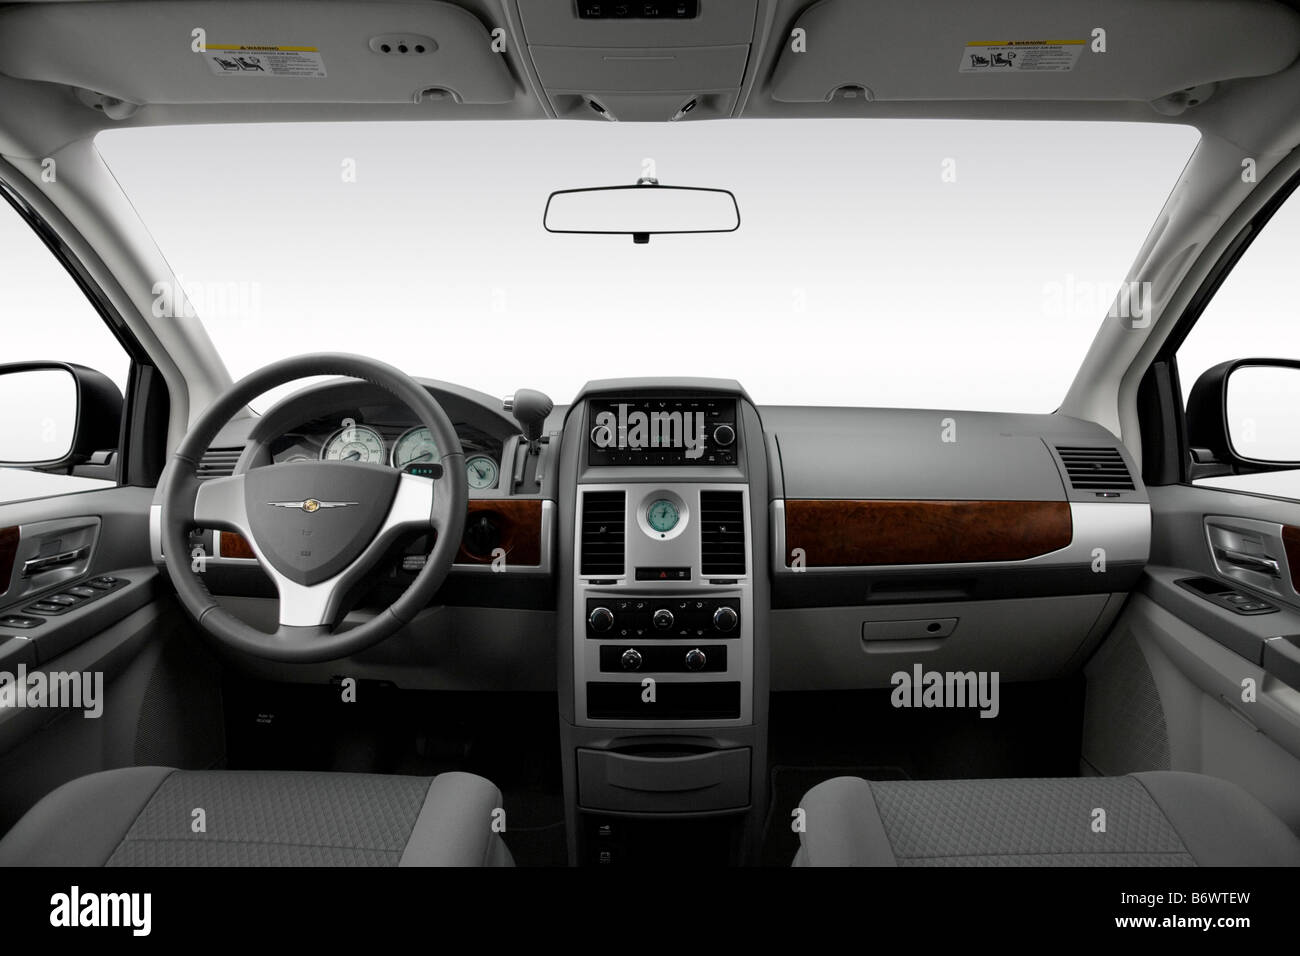 2009 chrysler town country touring in blue dashboard center stock photo 21466337 alamy. Black Bedroom Furniture Sets. Home Design Ideas